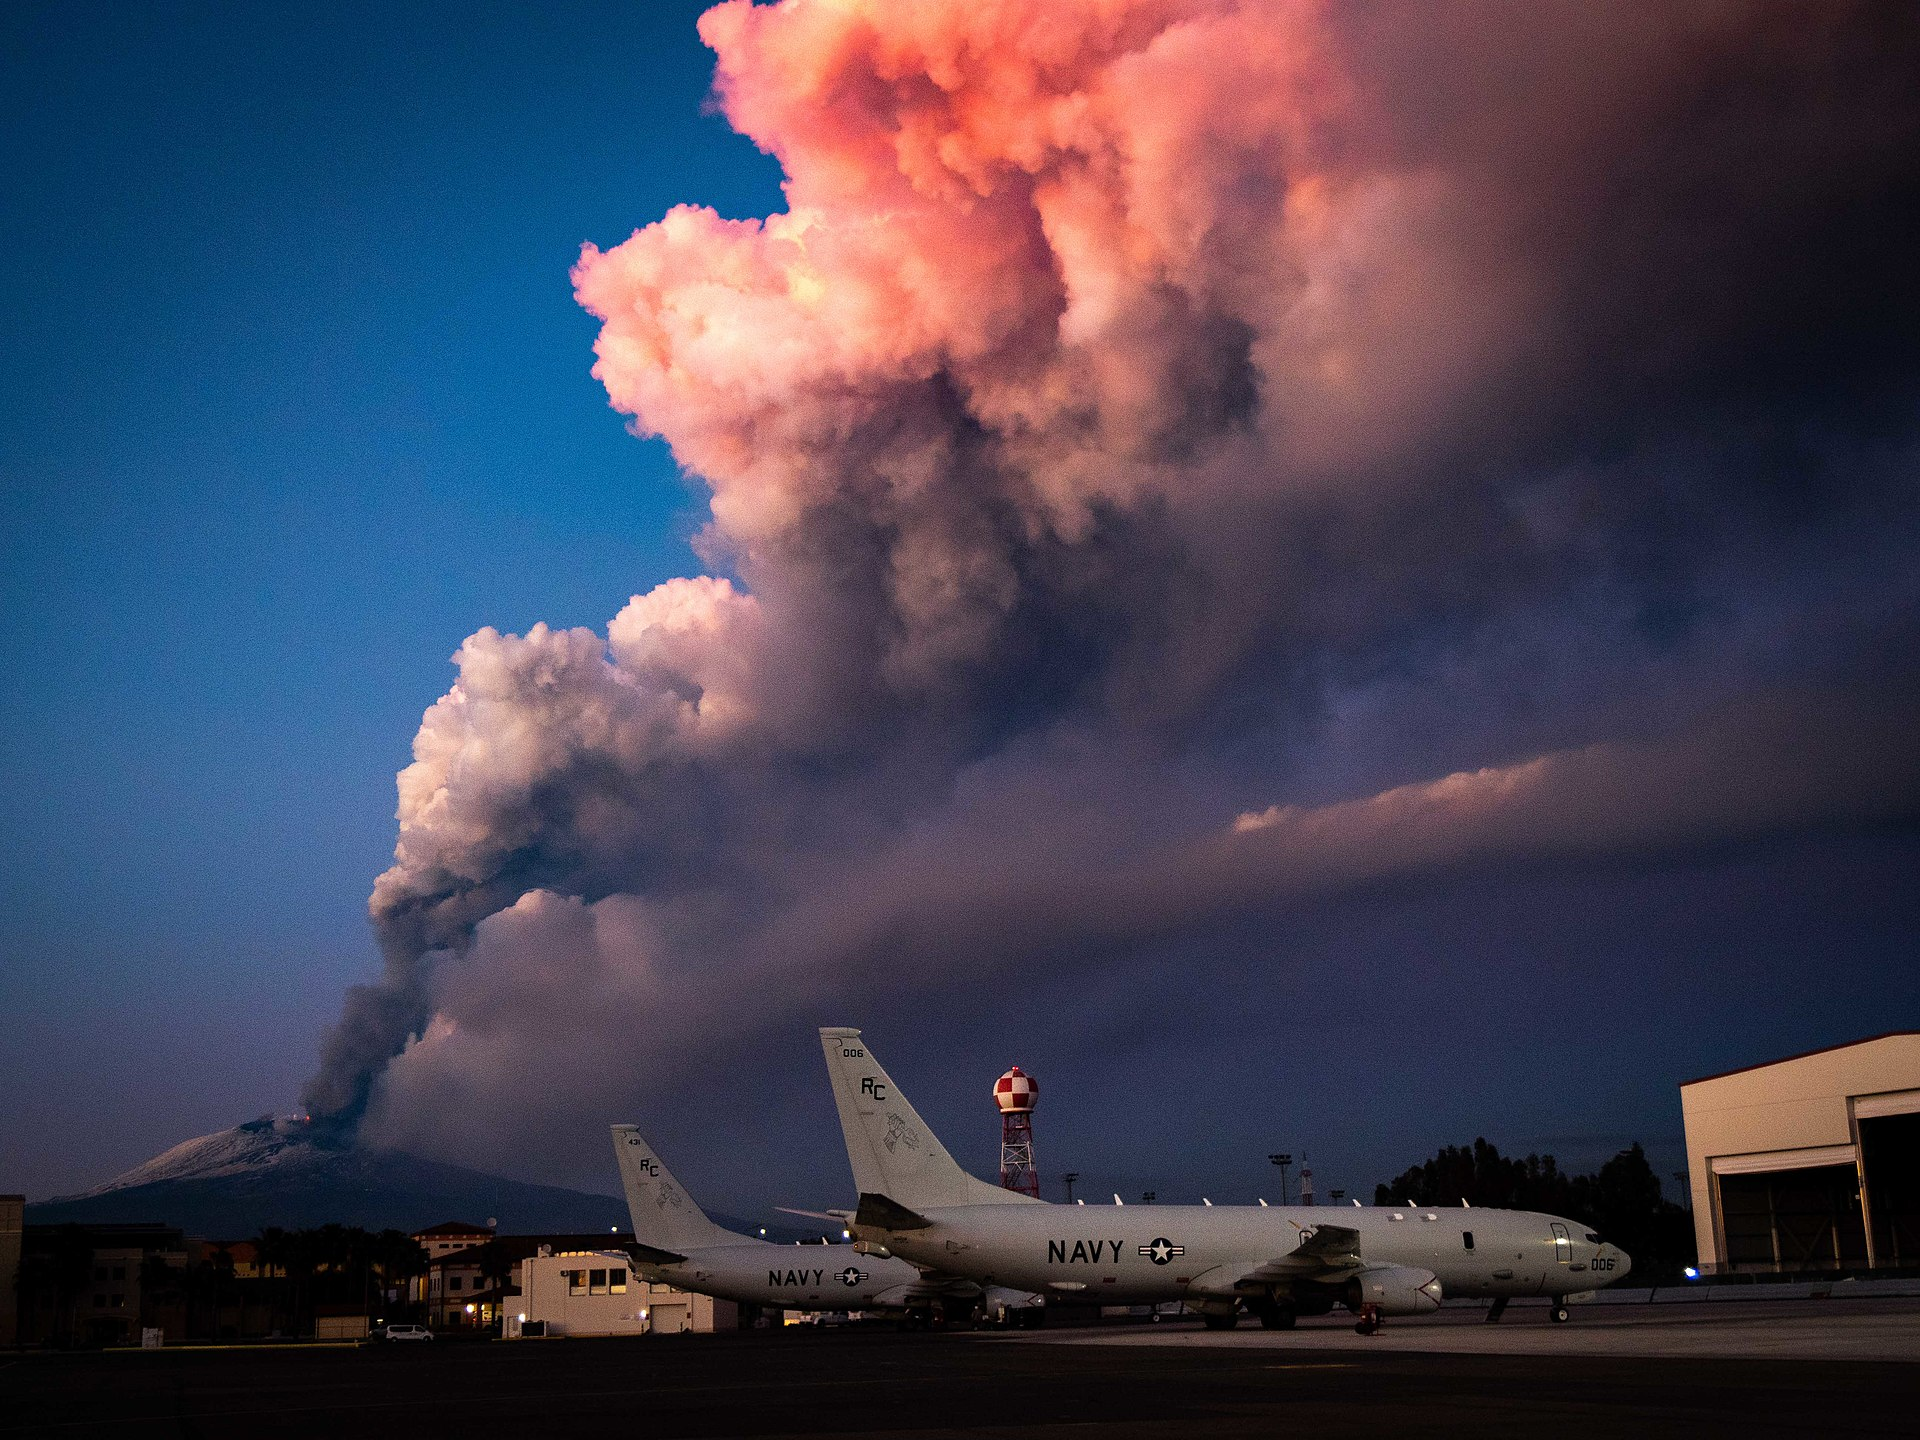 Huge cloud of pink smoke in a blue sky with grounded jet airplanes in foreground.